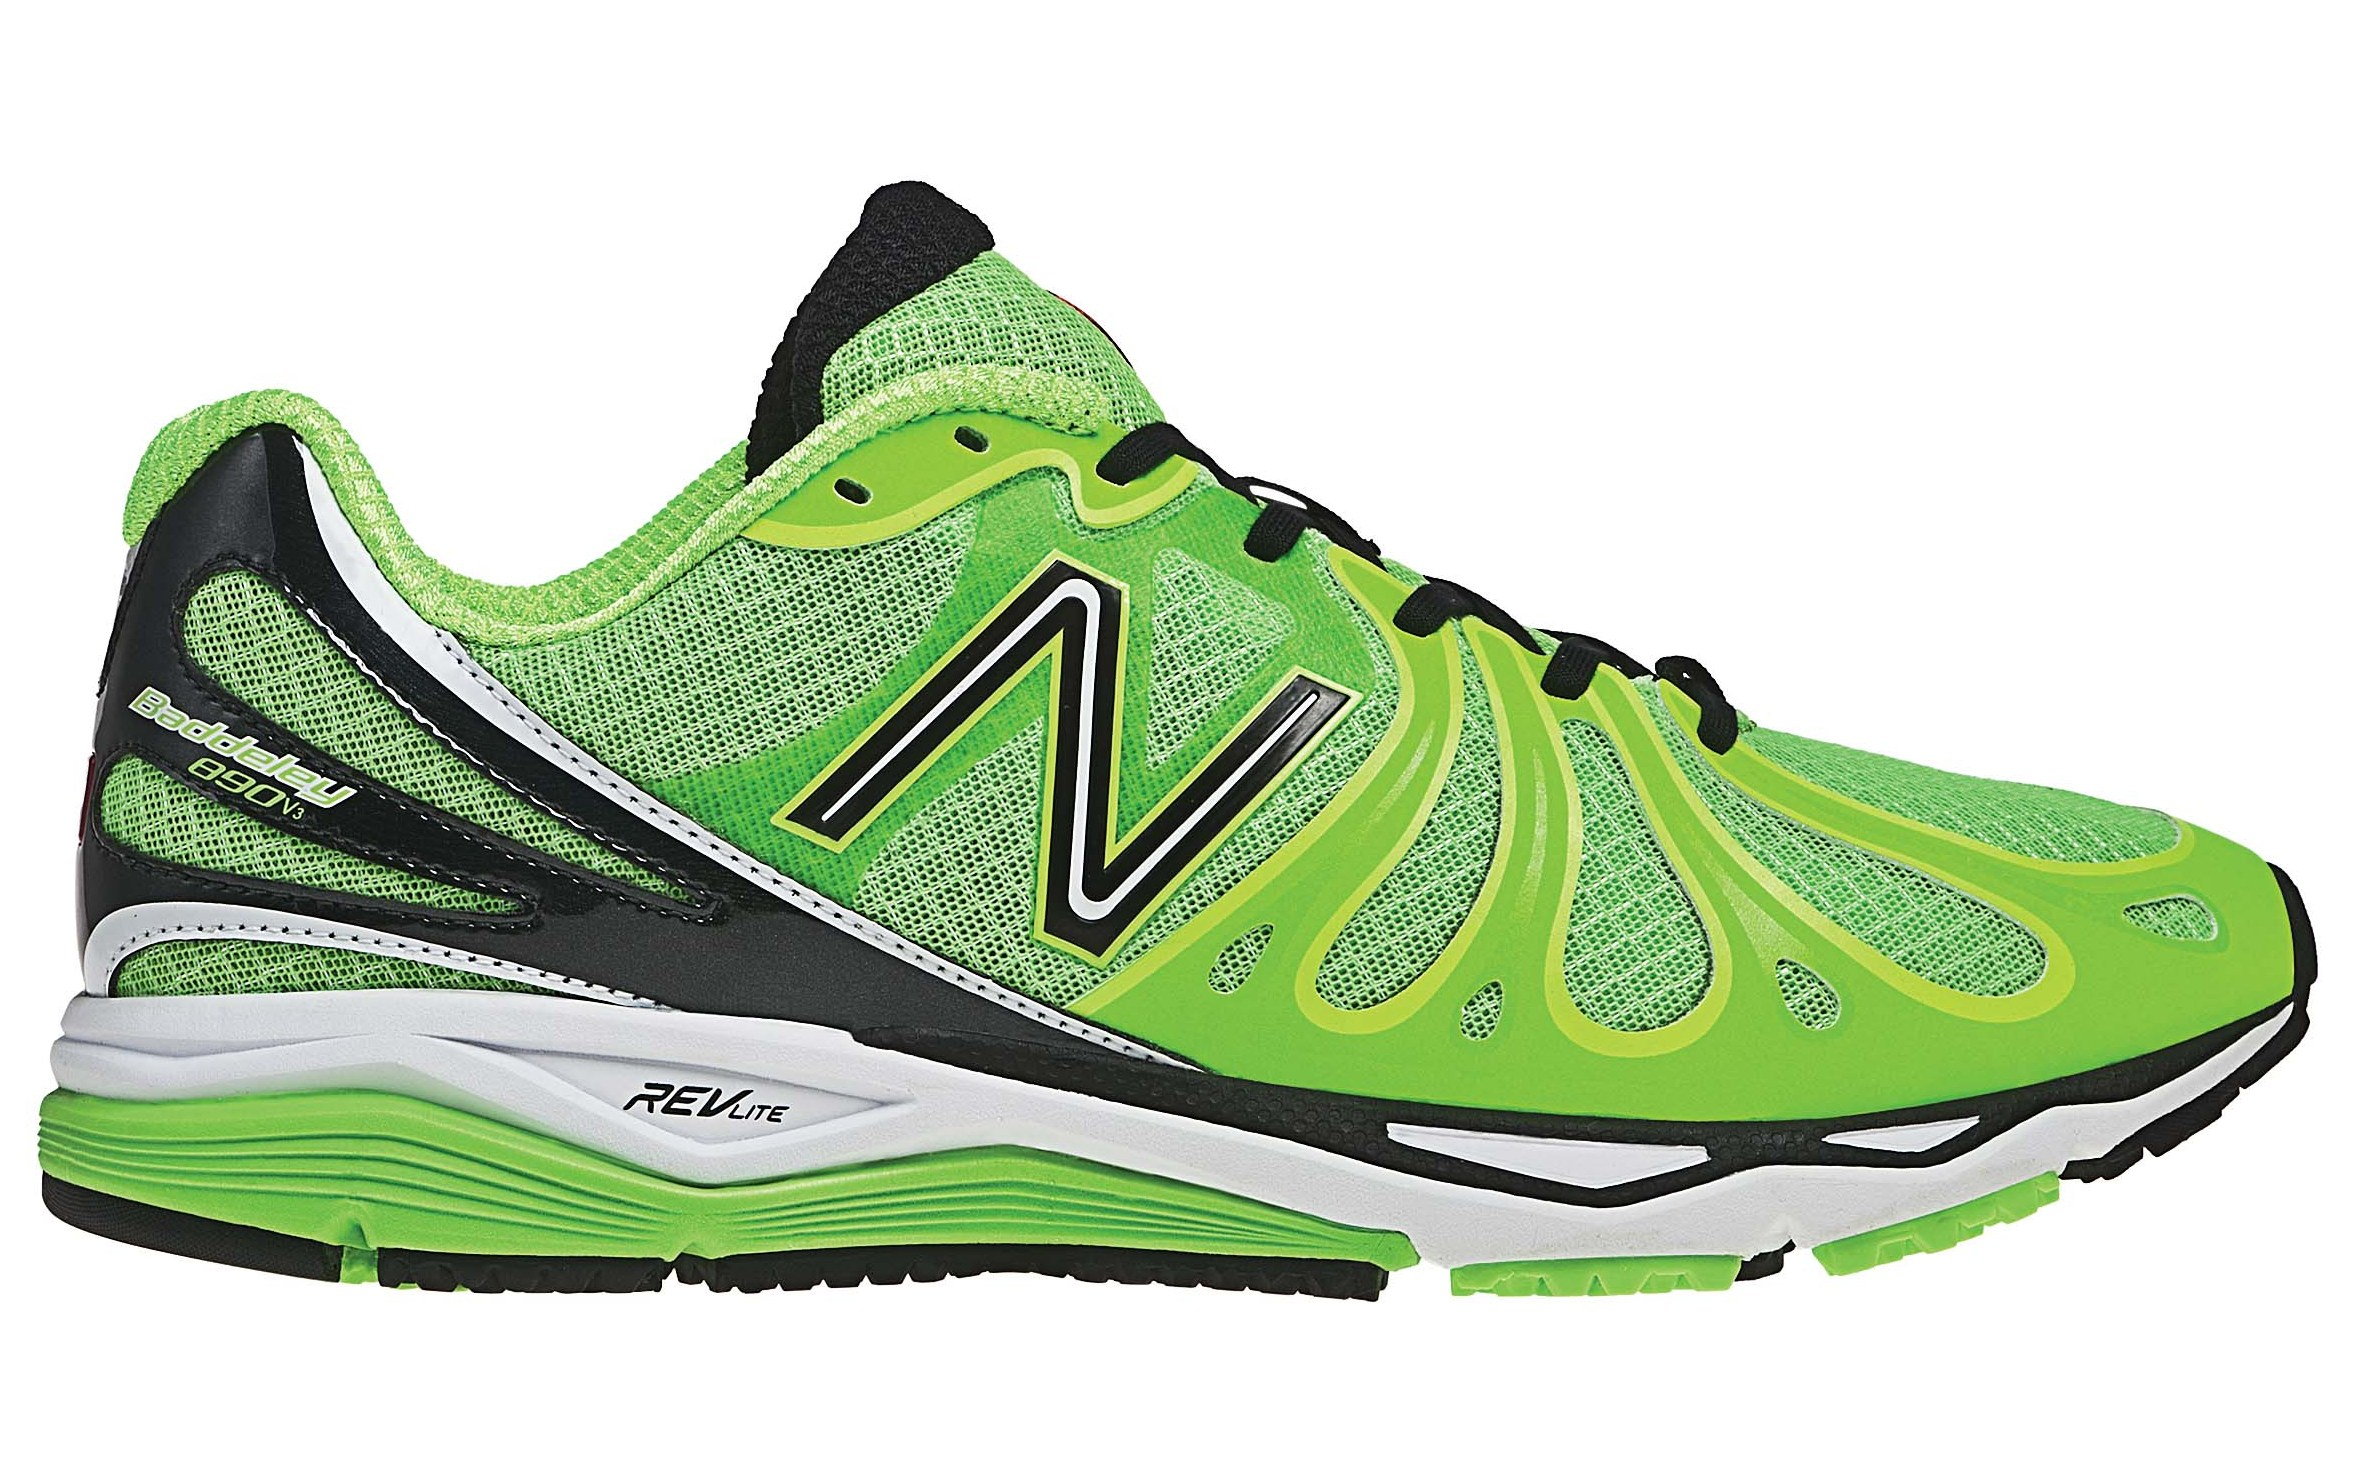 New Balance 890 V3 Revlite Baddeley